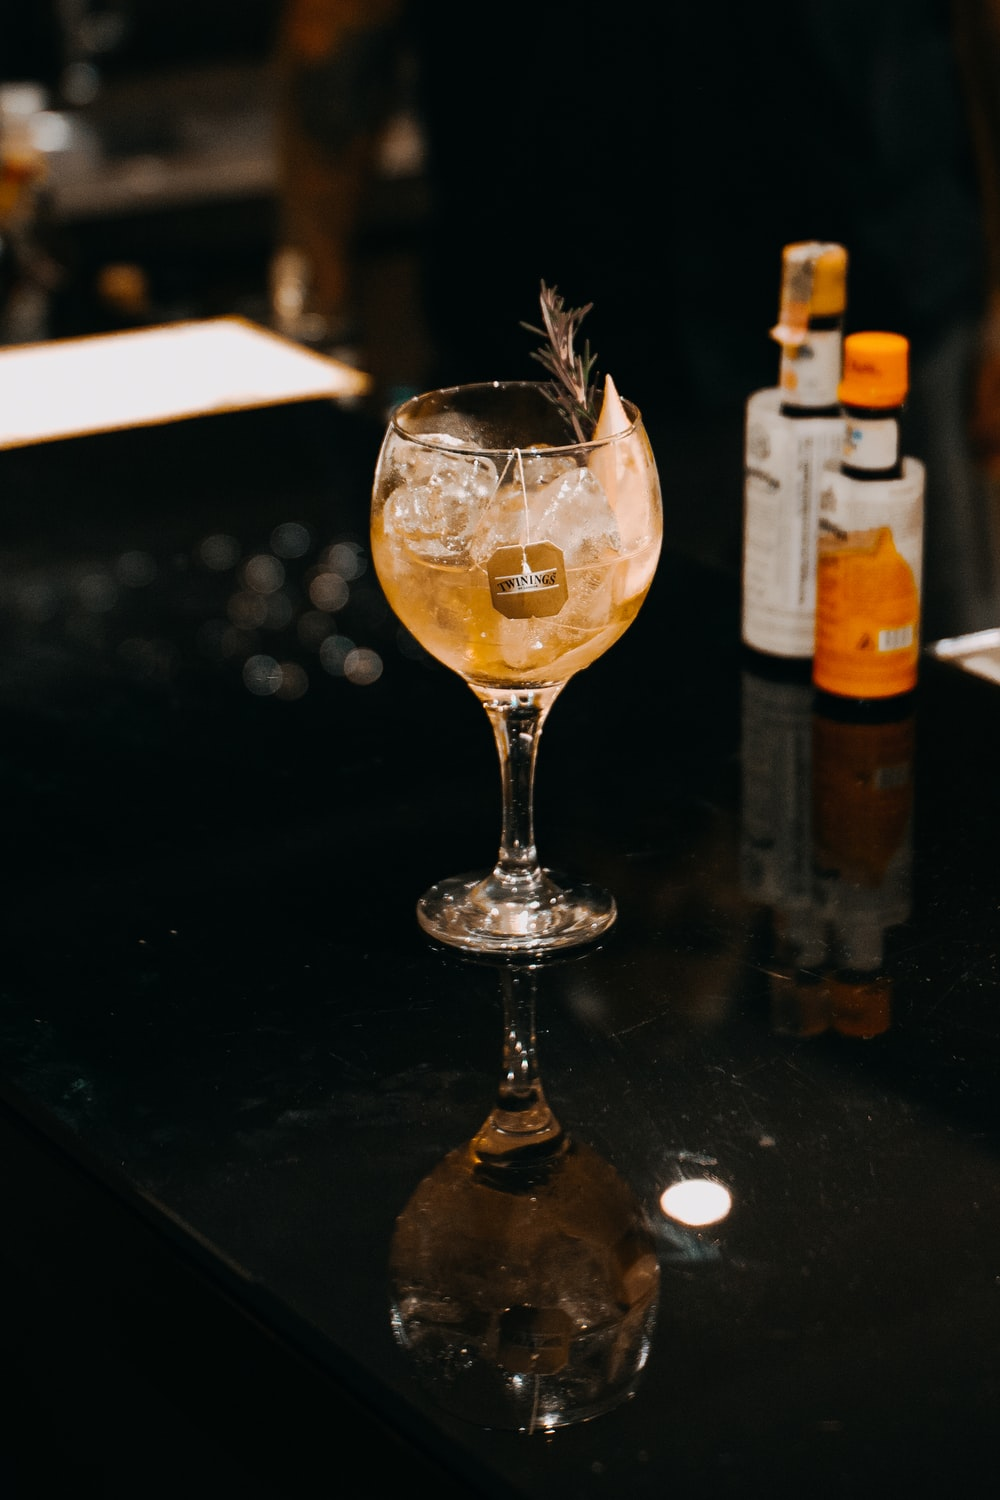 shallow focus photo of clear footed wine glass